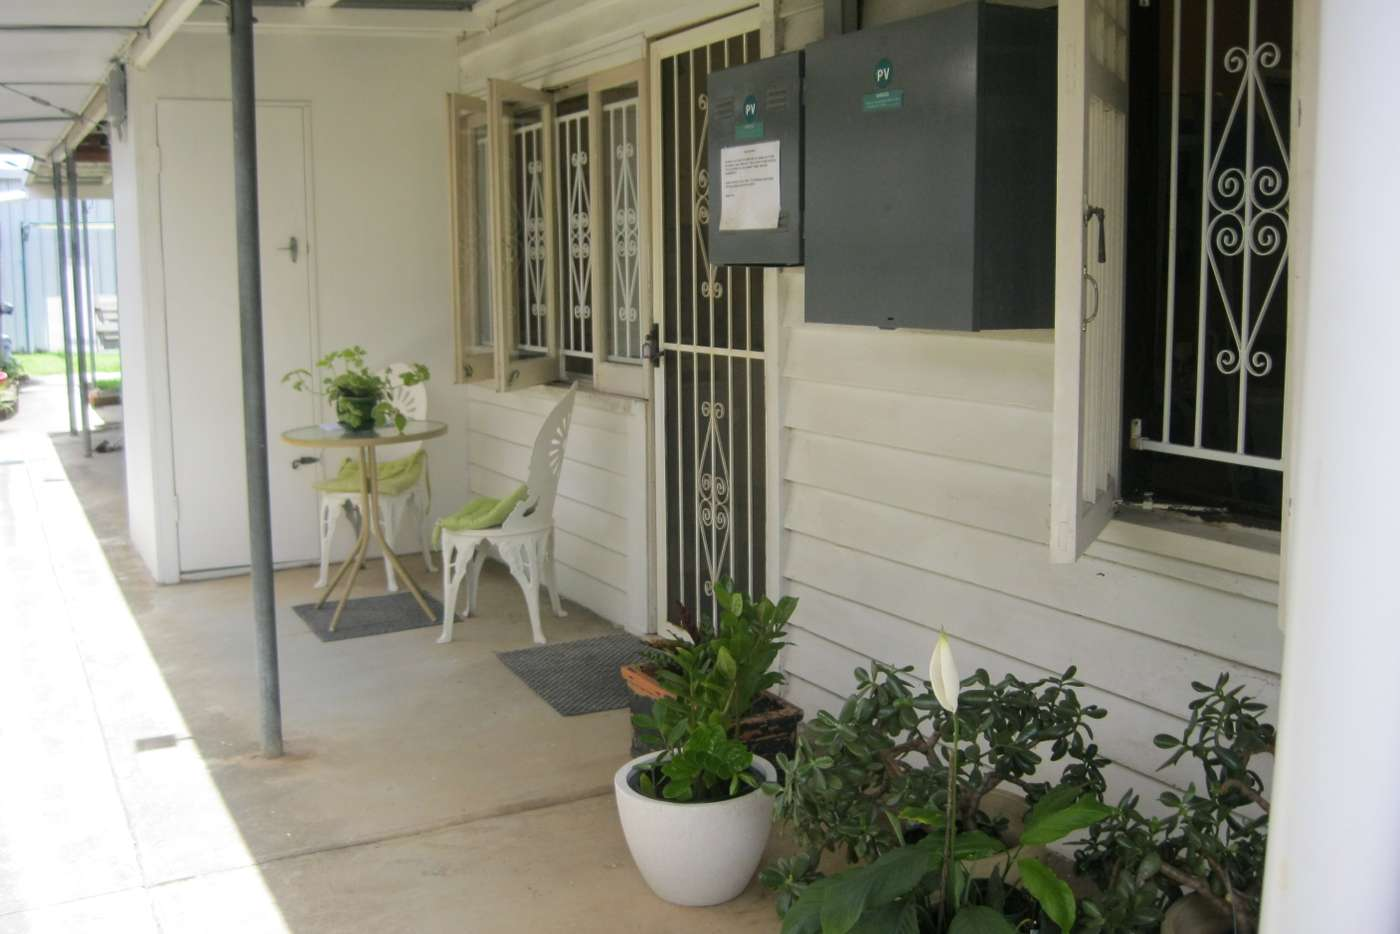 Main view of Homely unit listing, 1a/29 Vine Street, Ascot QLD 4007